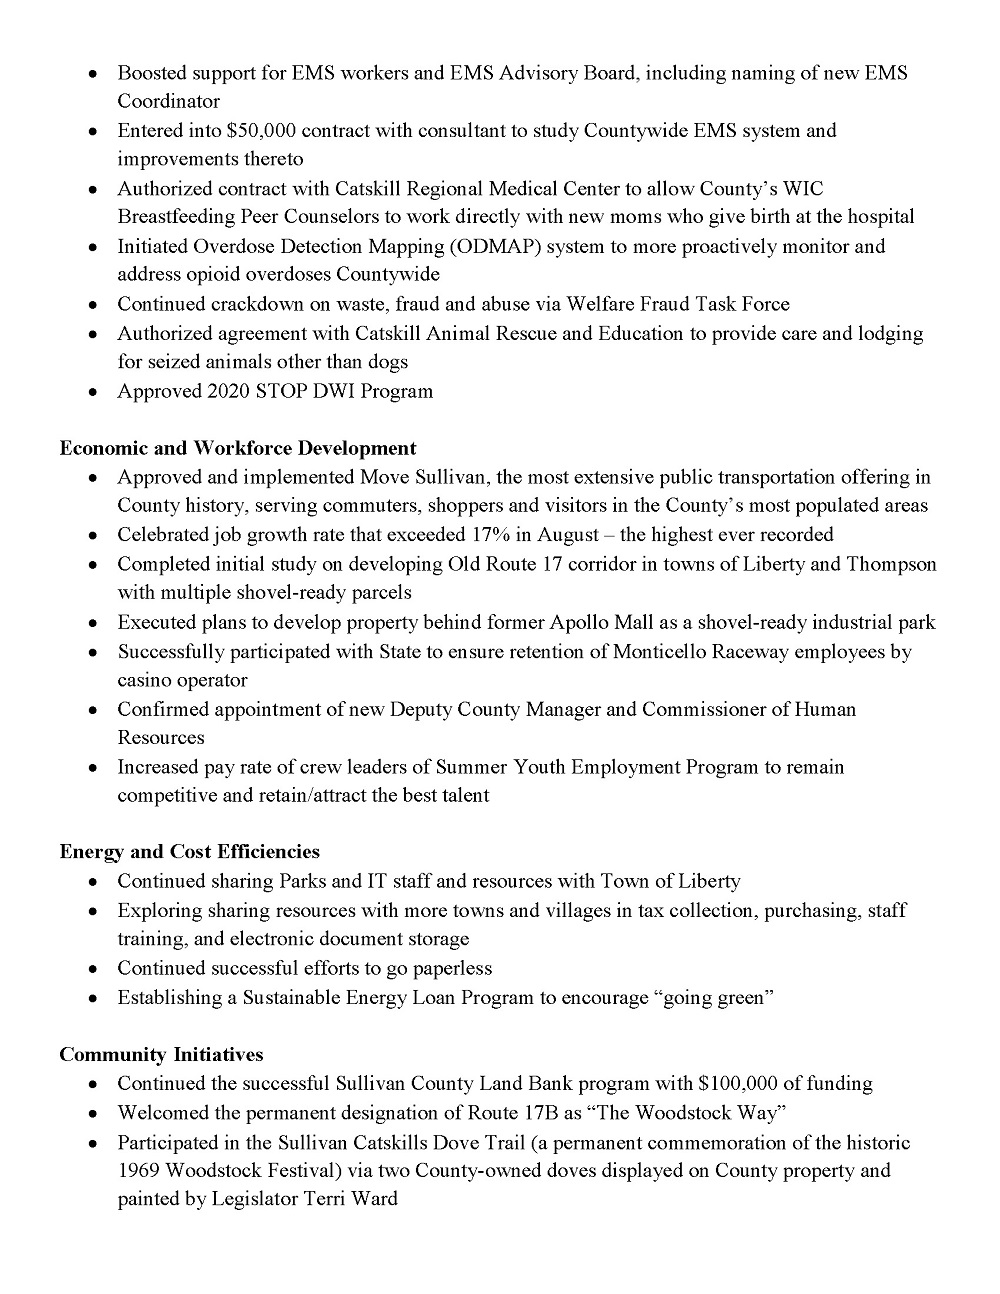 2019 Legislature Accomplishments Page 3